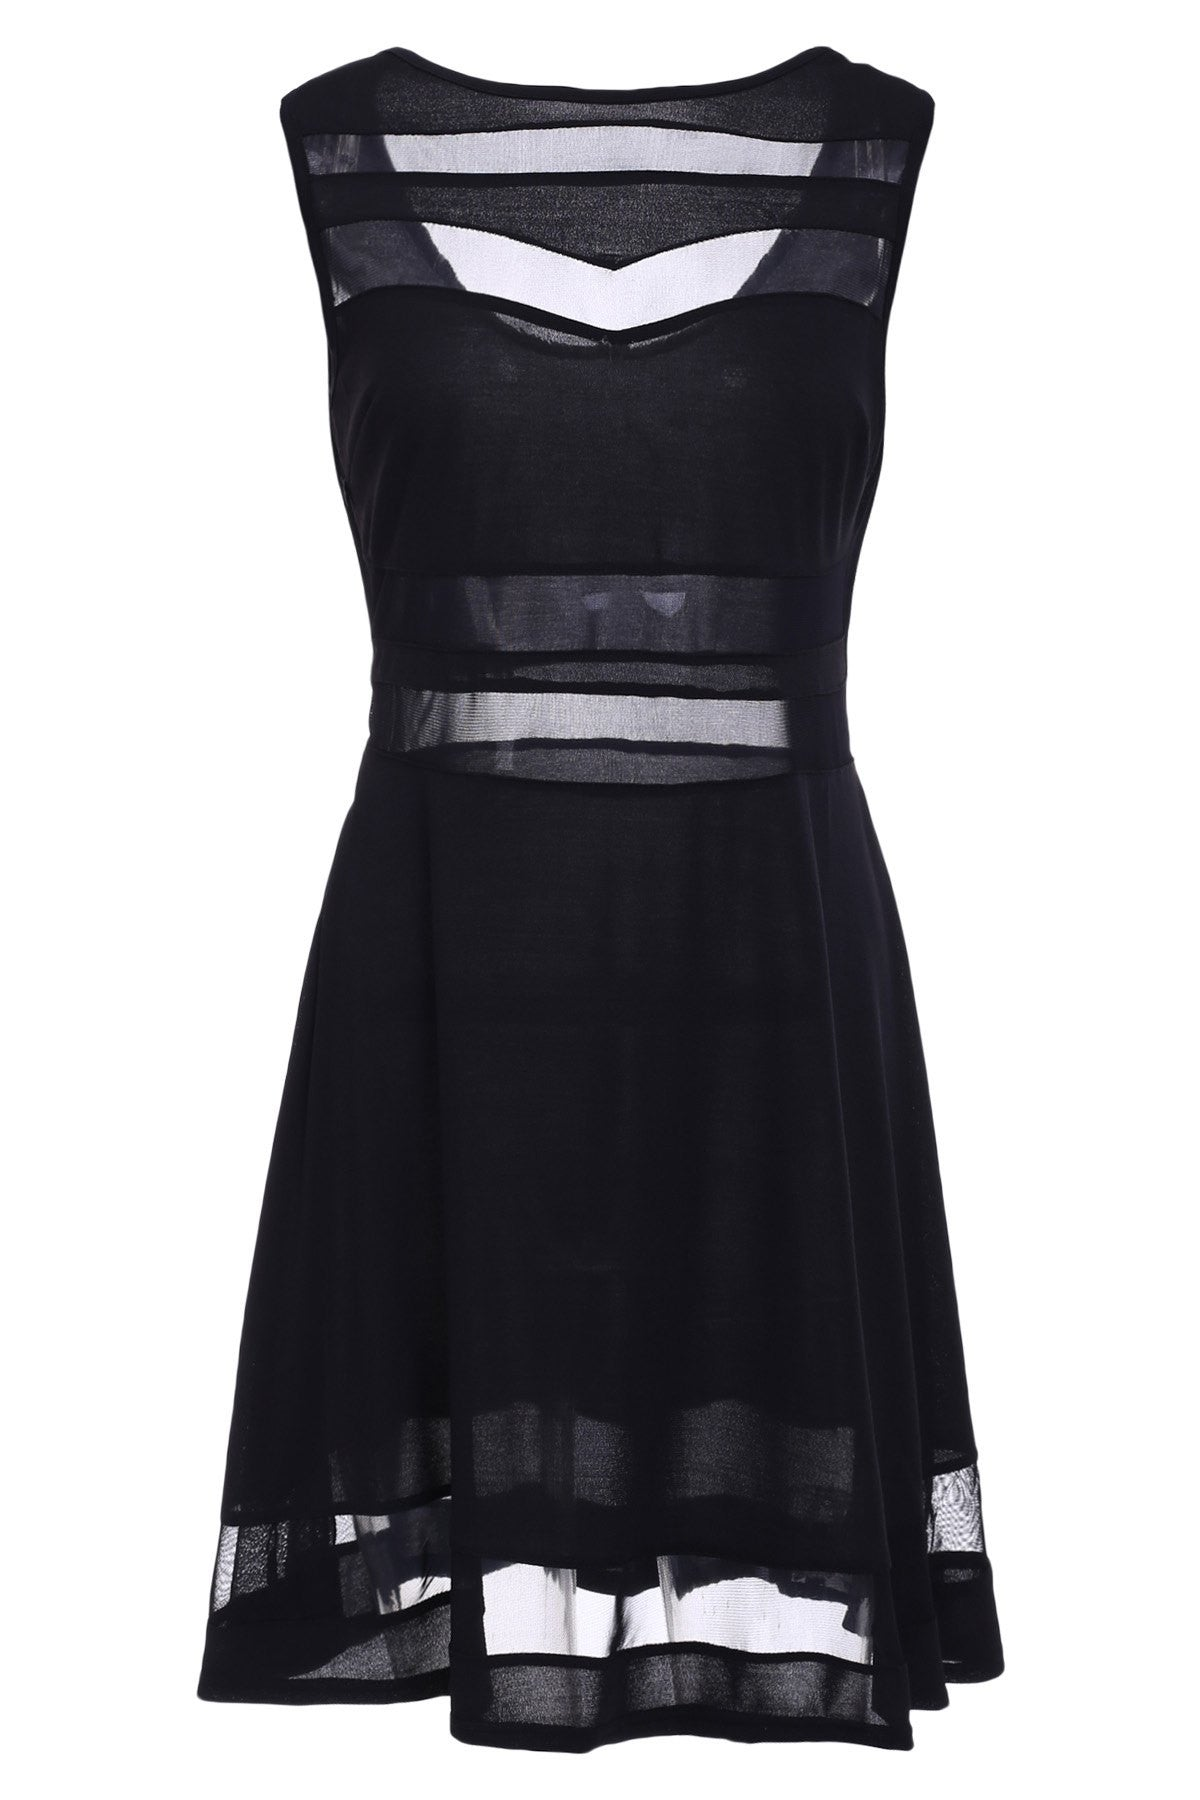 Fashionable Round Neck Sleeveless Mesh Splicing A-Line Dress For Women LAVELIQ